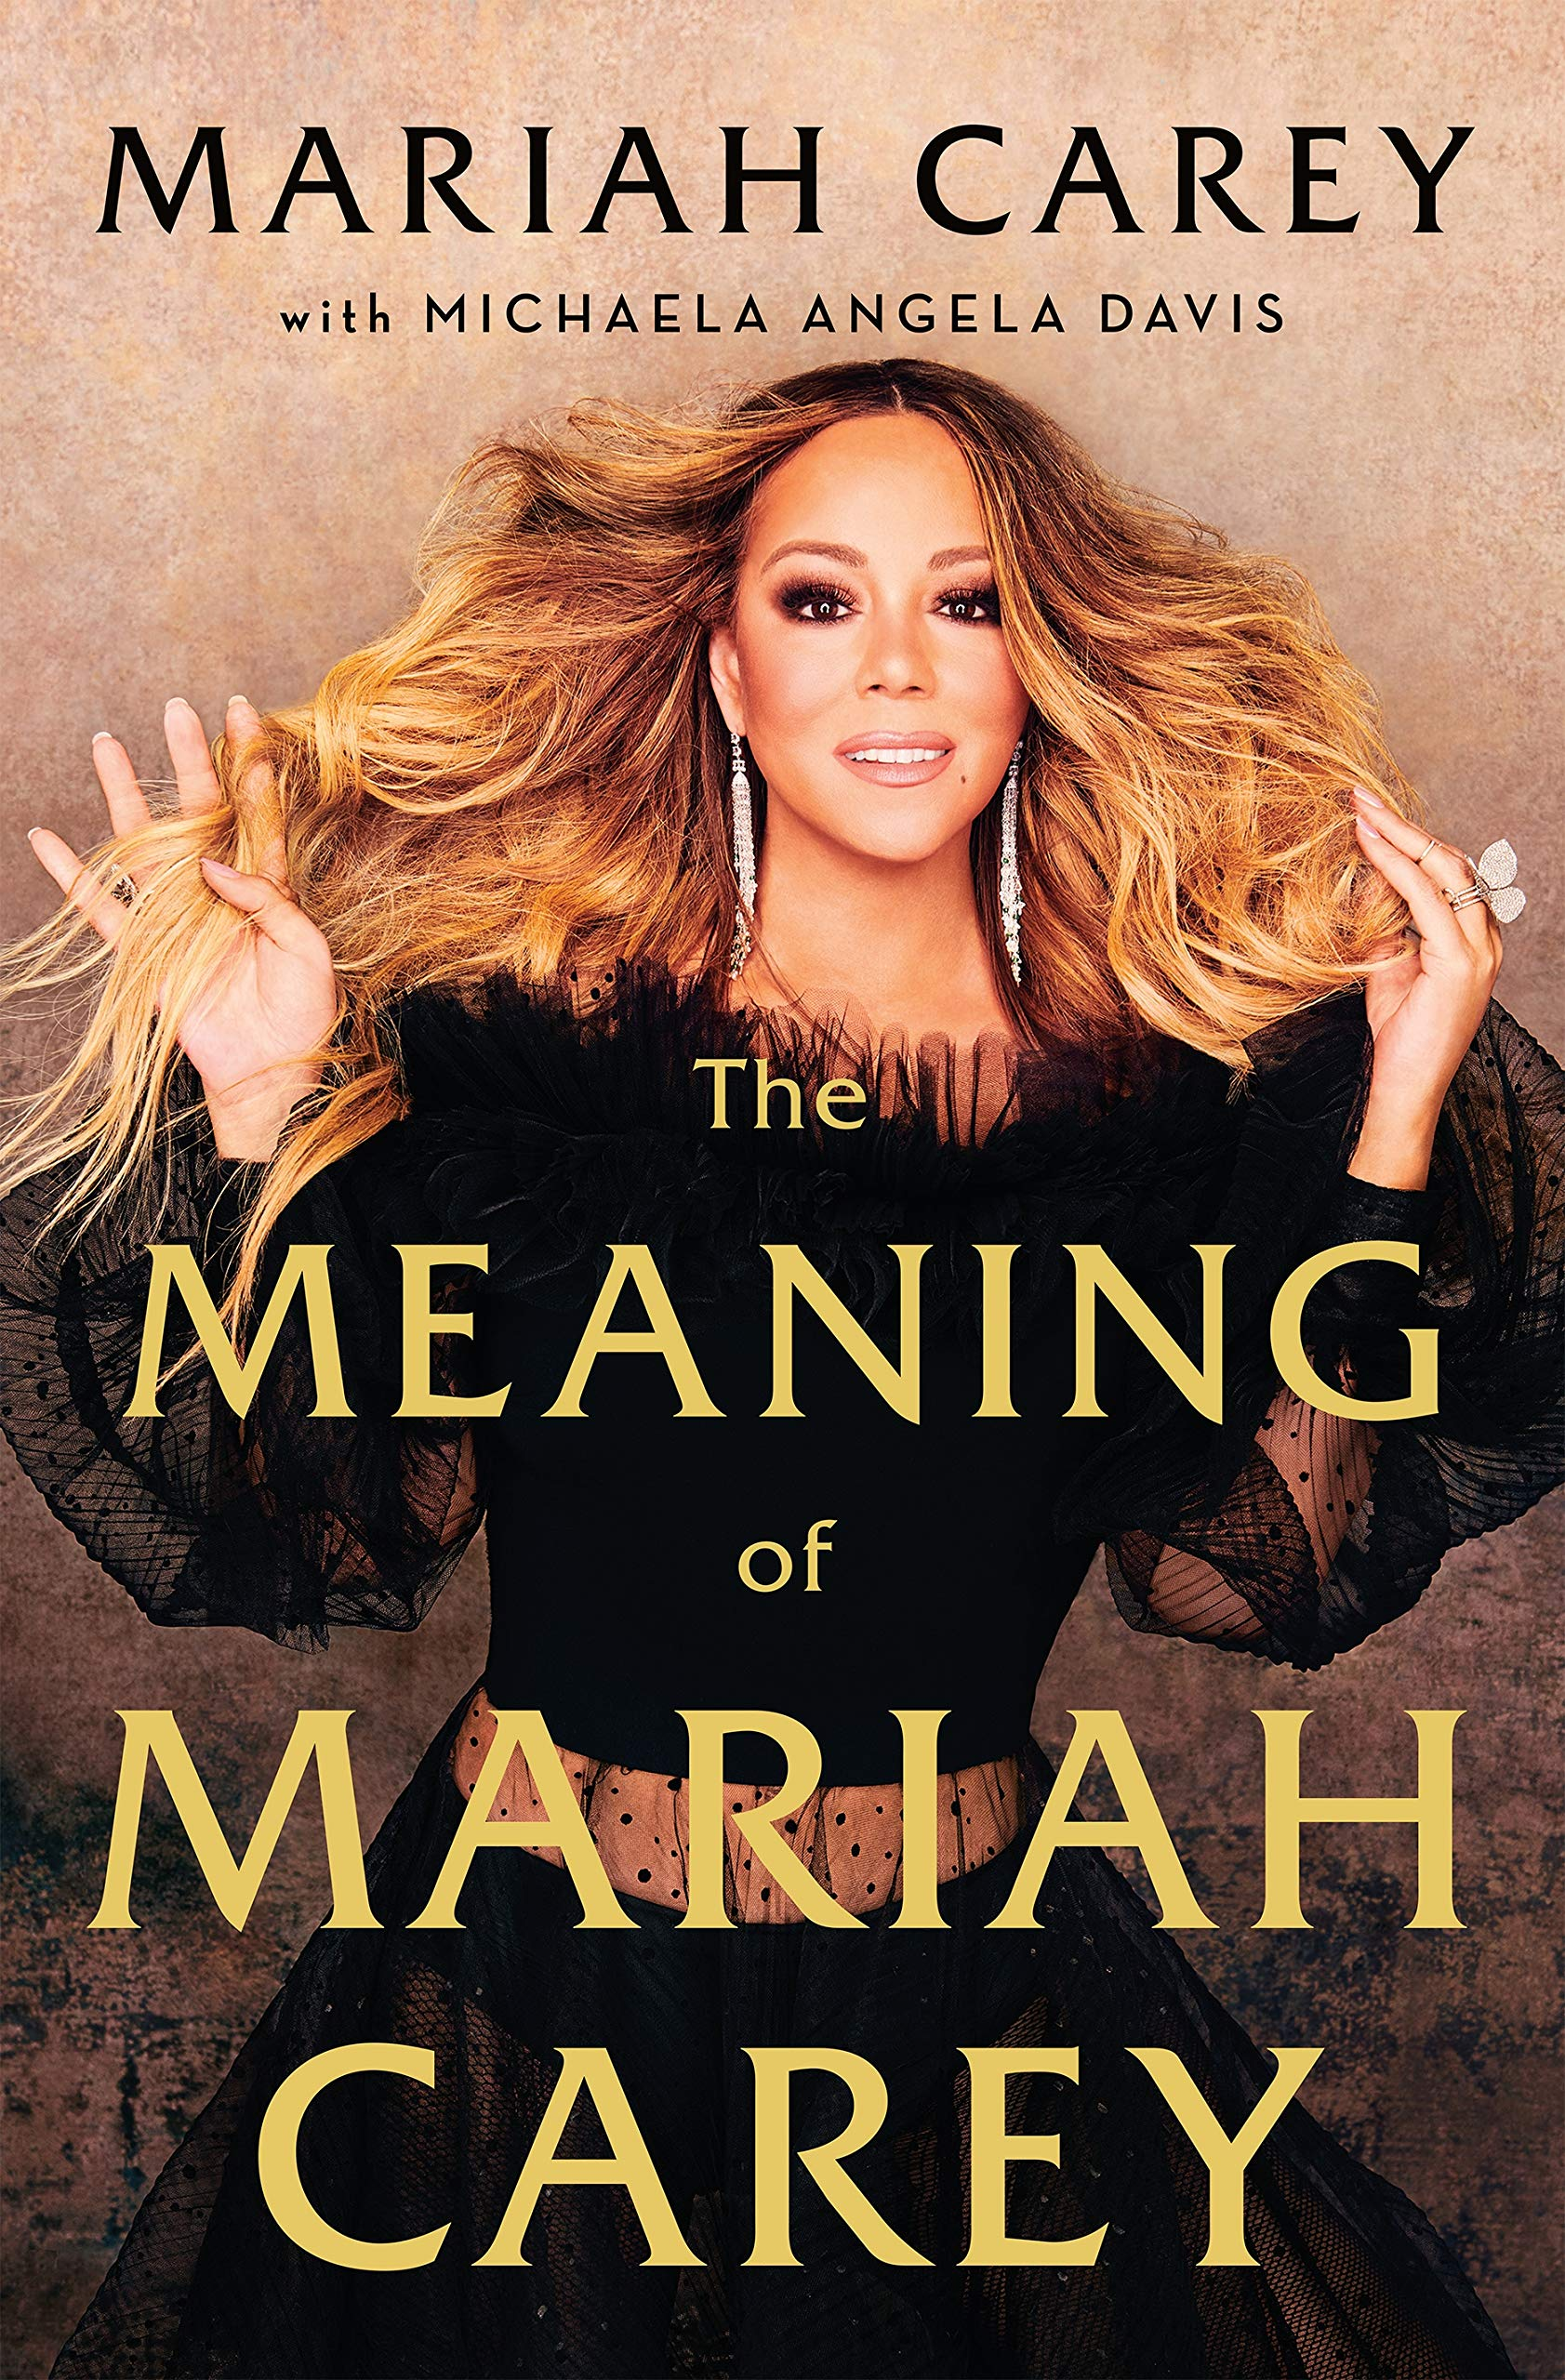 mariah-carey-is-a-1-new-york-times-best-selling-author-the-meaning-of-mariah-carey